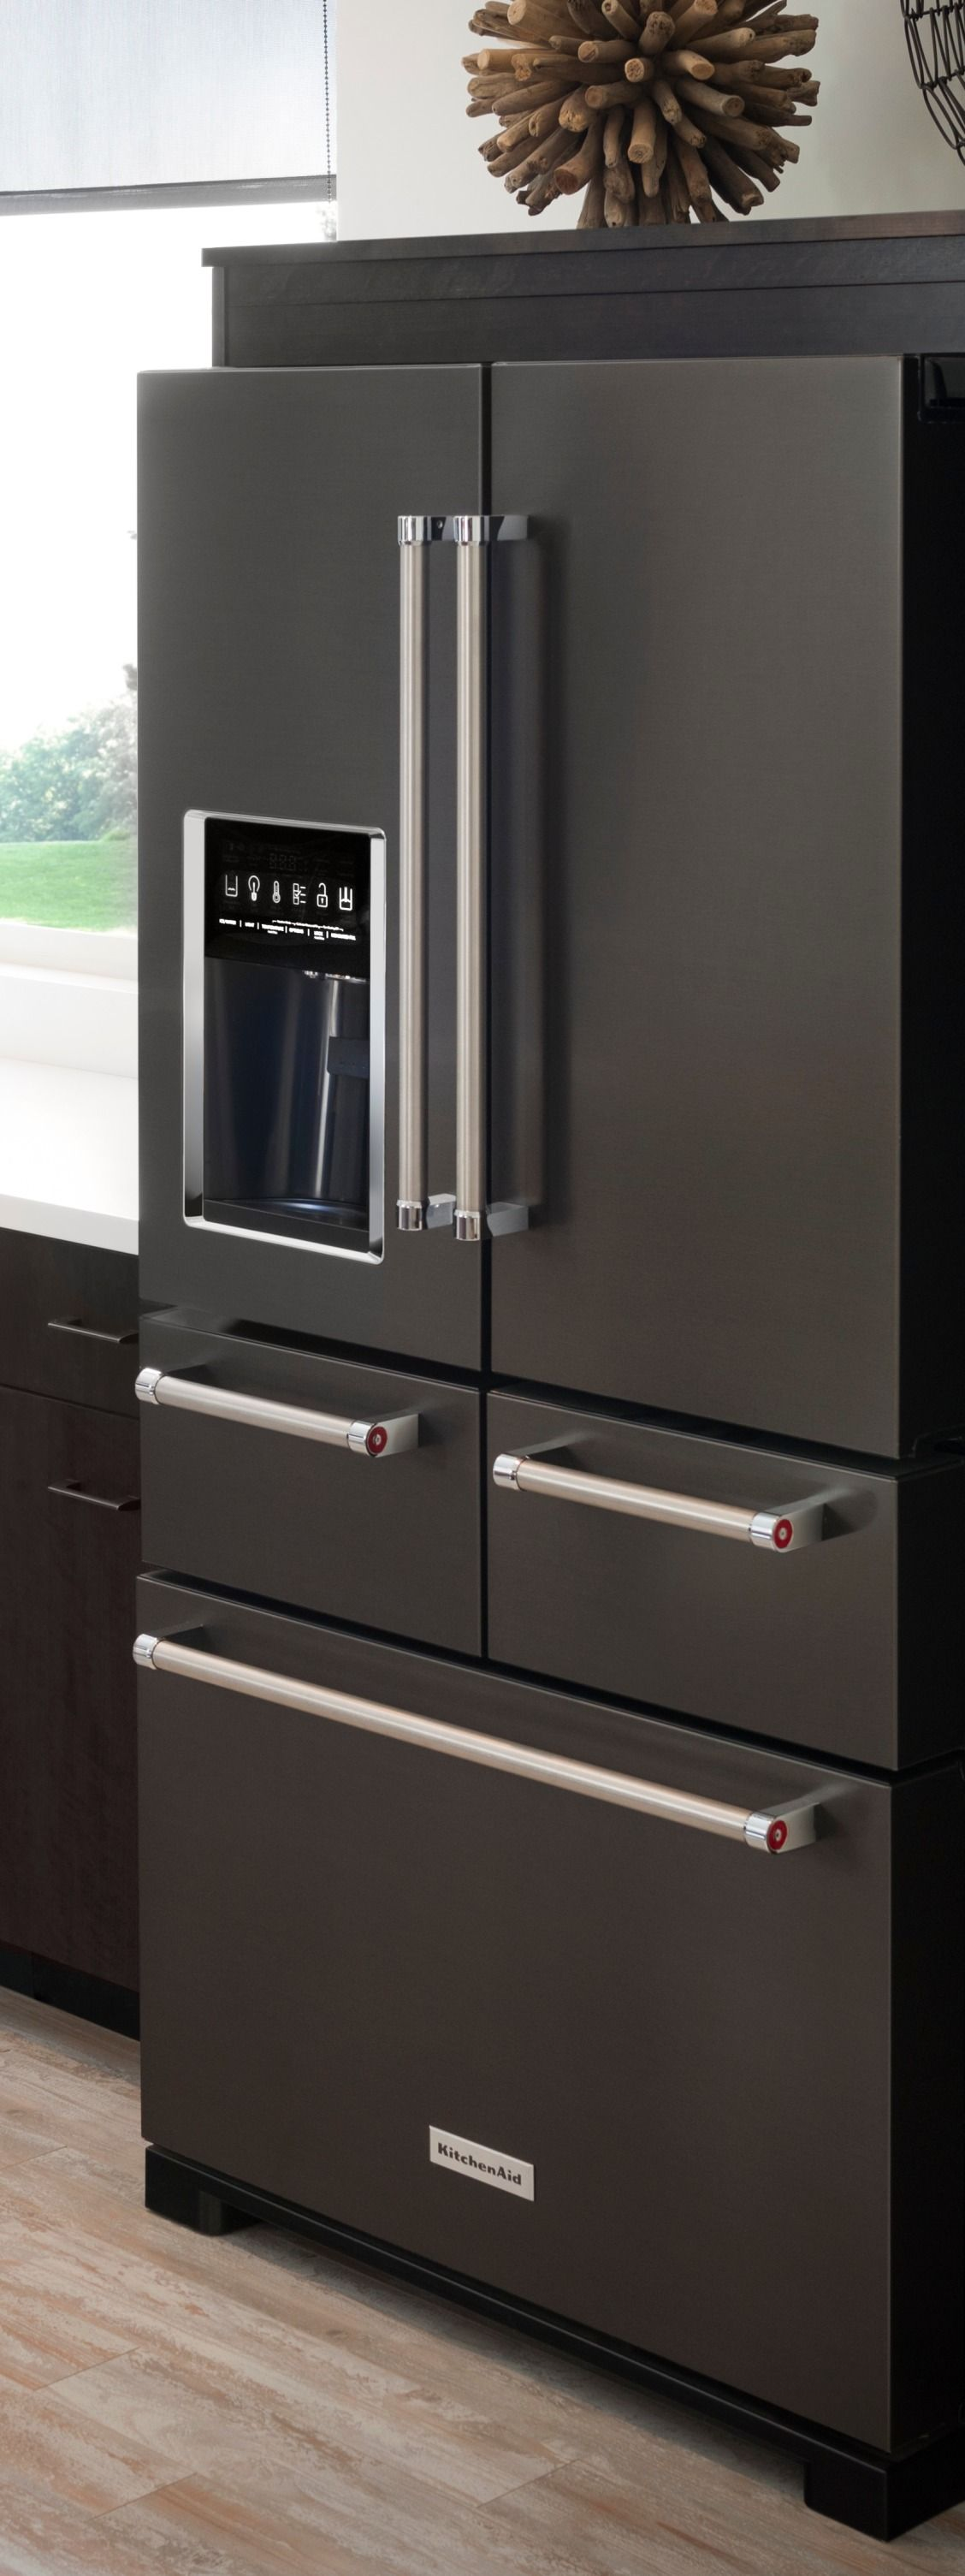 black stainless steel kitchen stand alone cabinet for appliances give your a bold